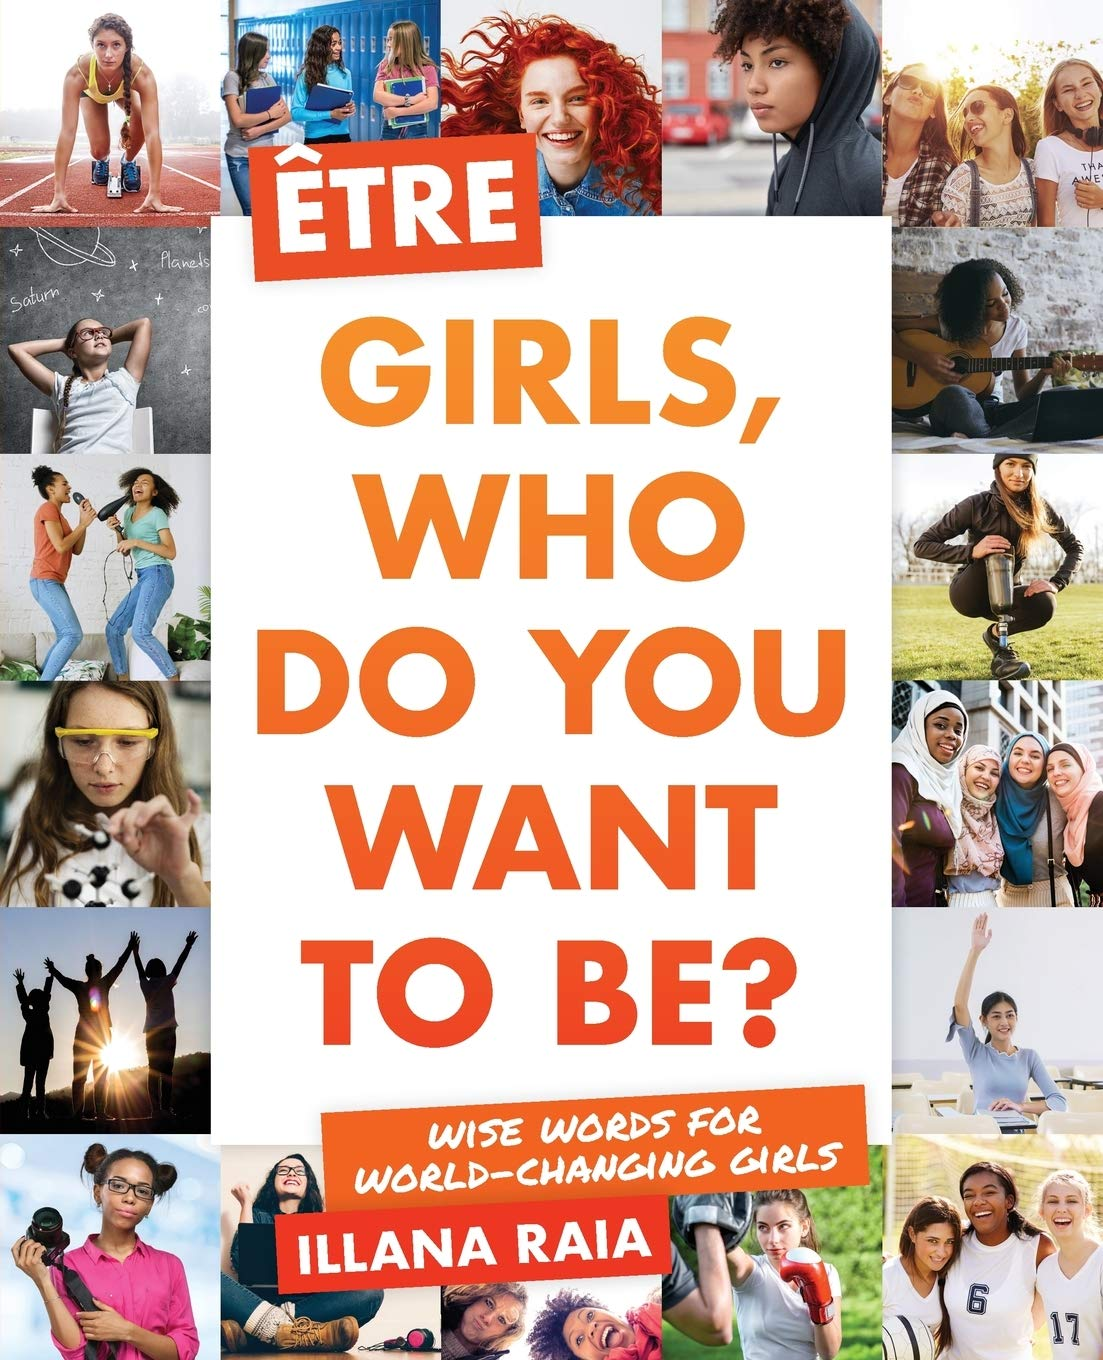 Être: Girls, Who Do You Want to Be? by Etre Press